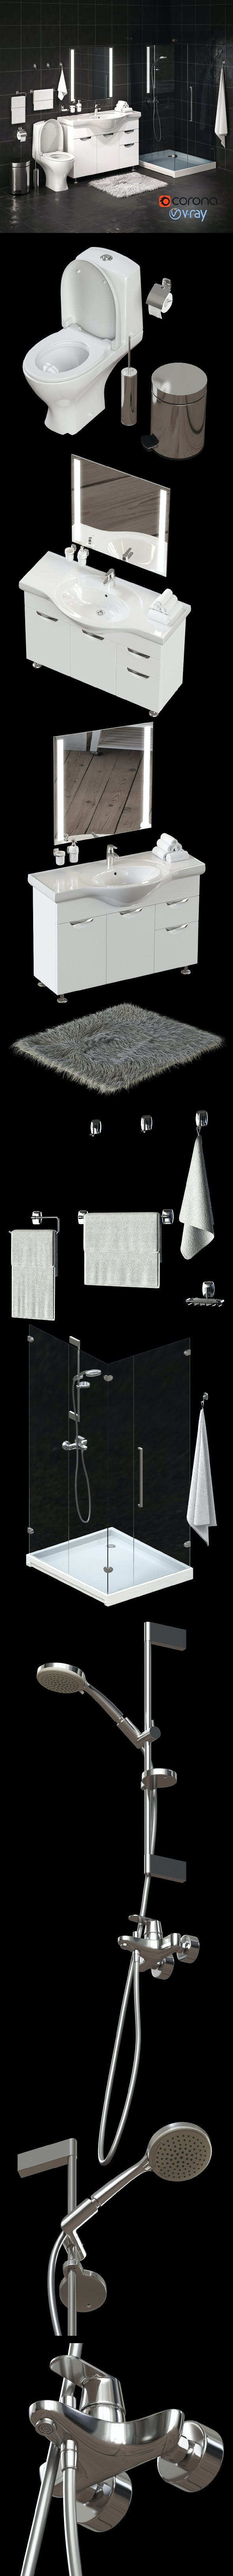 Set of bathroom equipment and accessories for bathrooms - 3DOcean Item for Sale